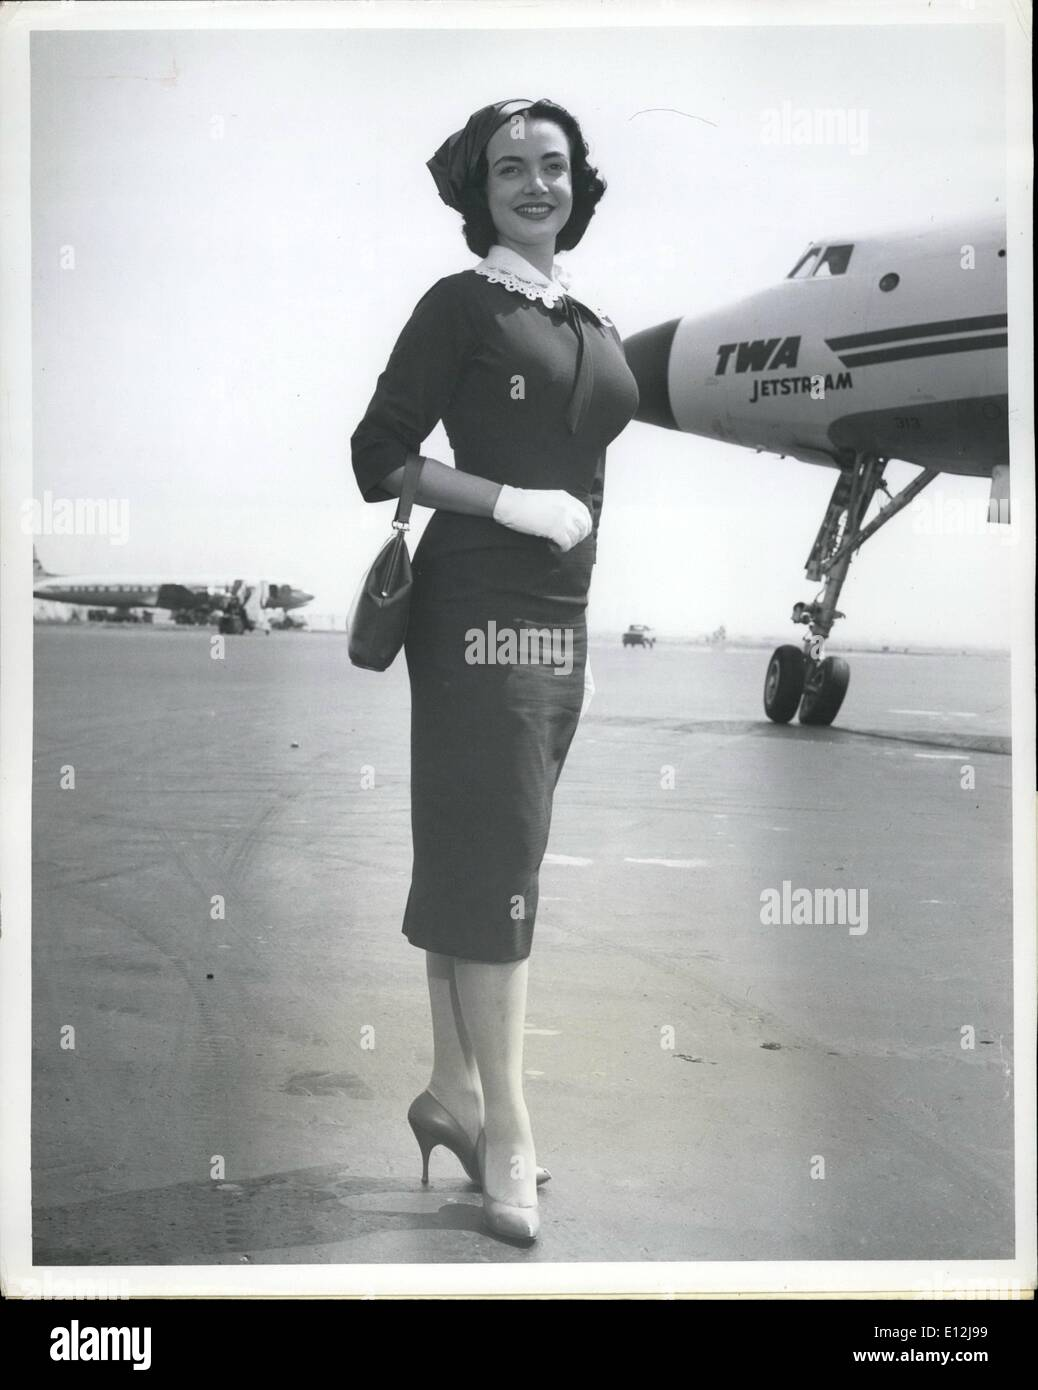 Feb. 24, 2012 - Idlewild Airport, N.Y., April 18-- Voluptuous Singer- Actress Kitty Dolan, 20, stands out Beautiful Stock Photo